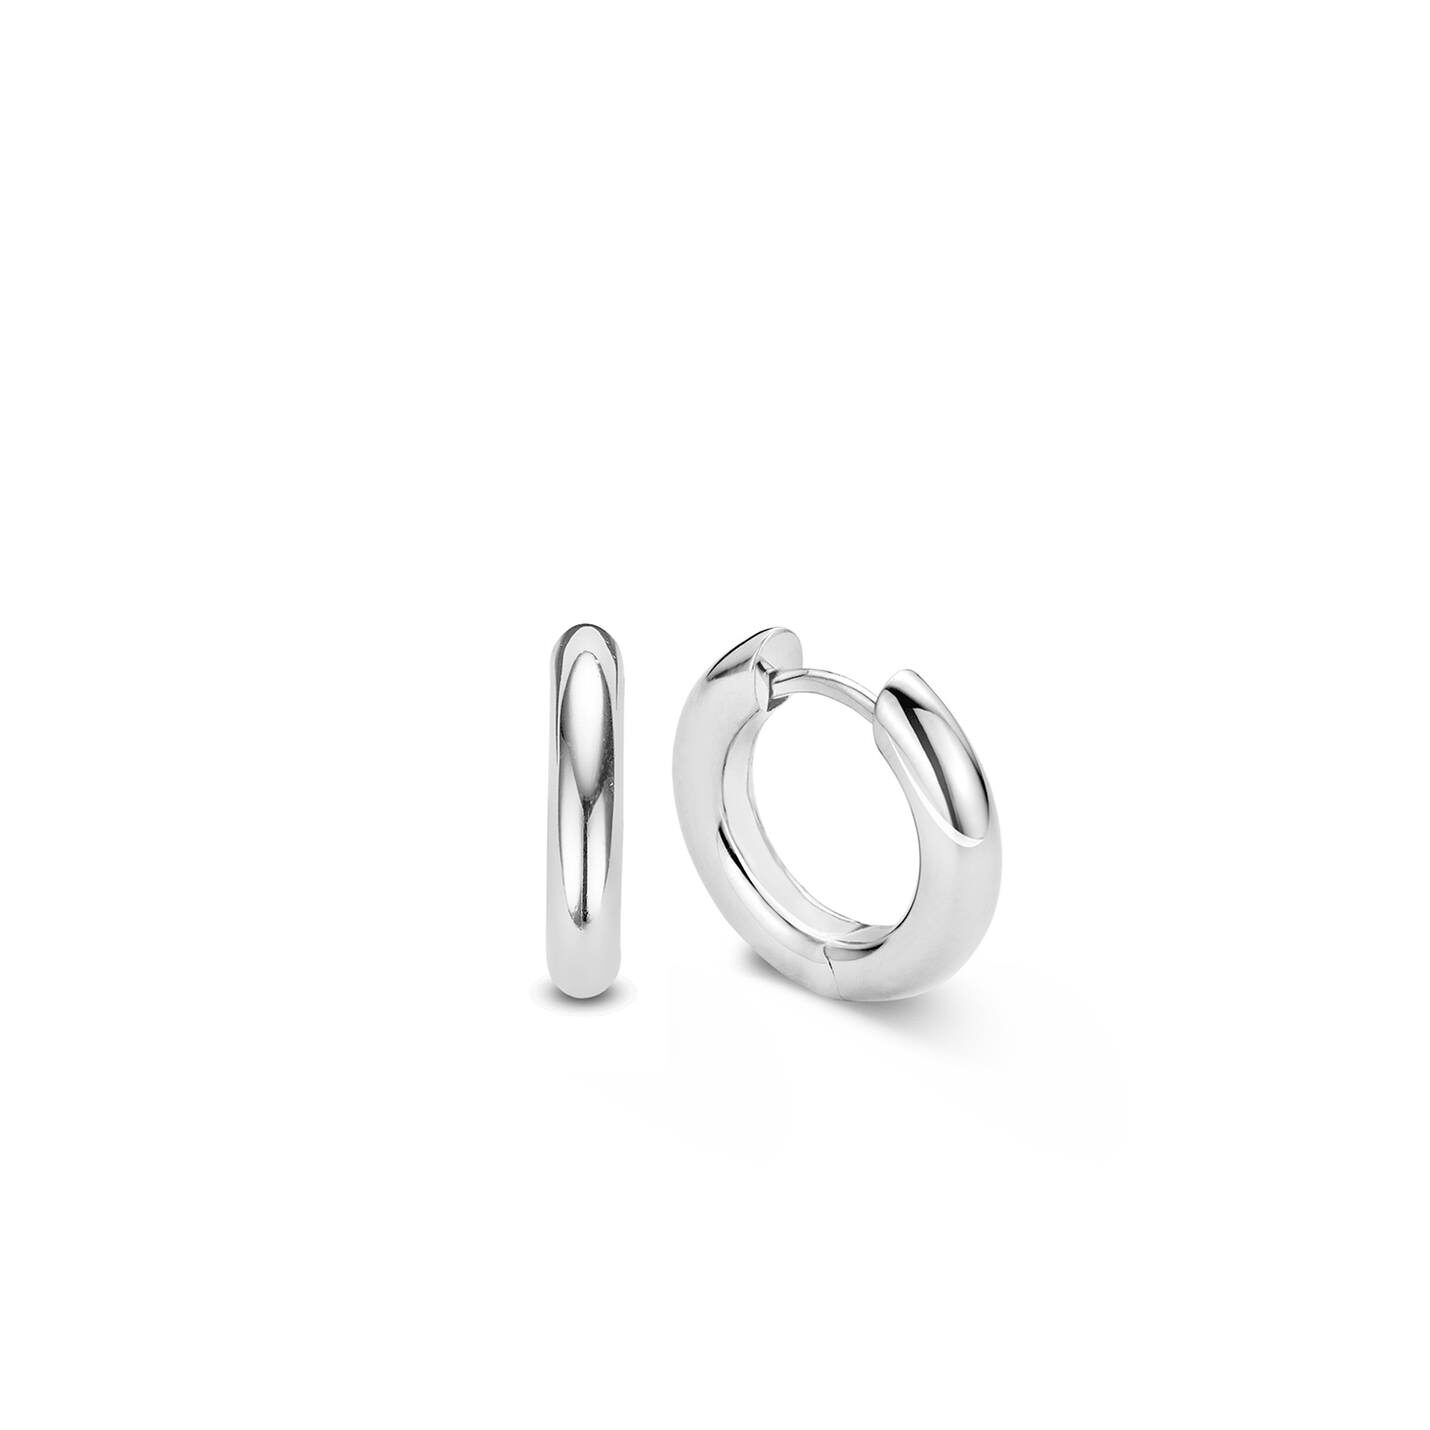 Ti Sento Silver Hoop Earrings – Medium